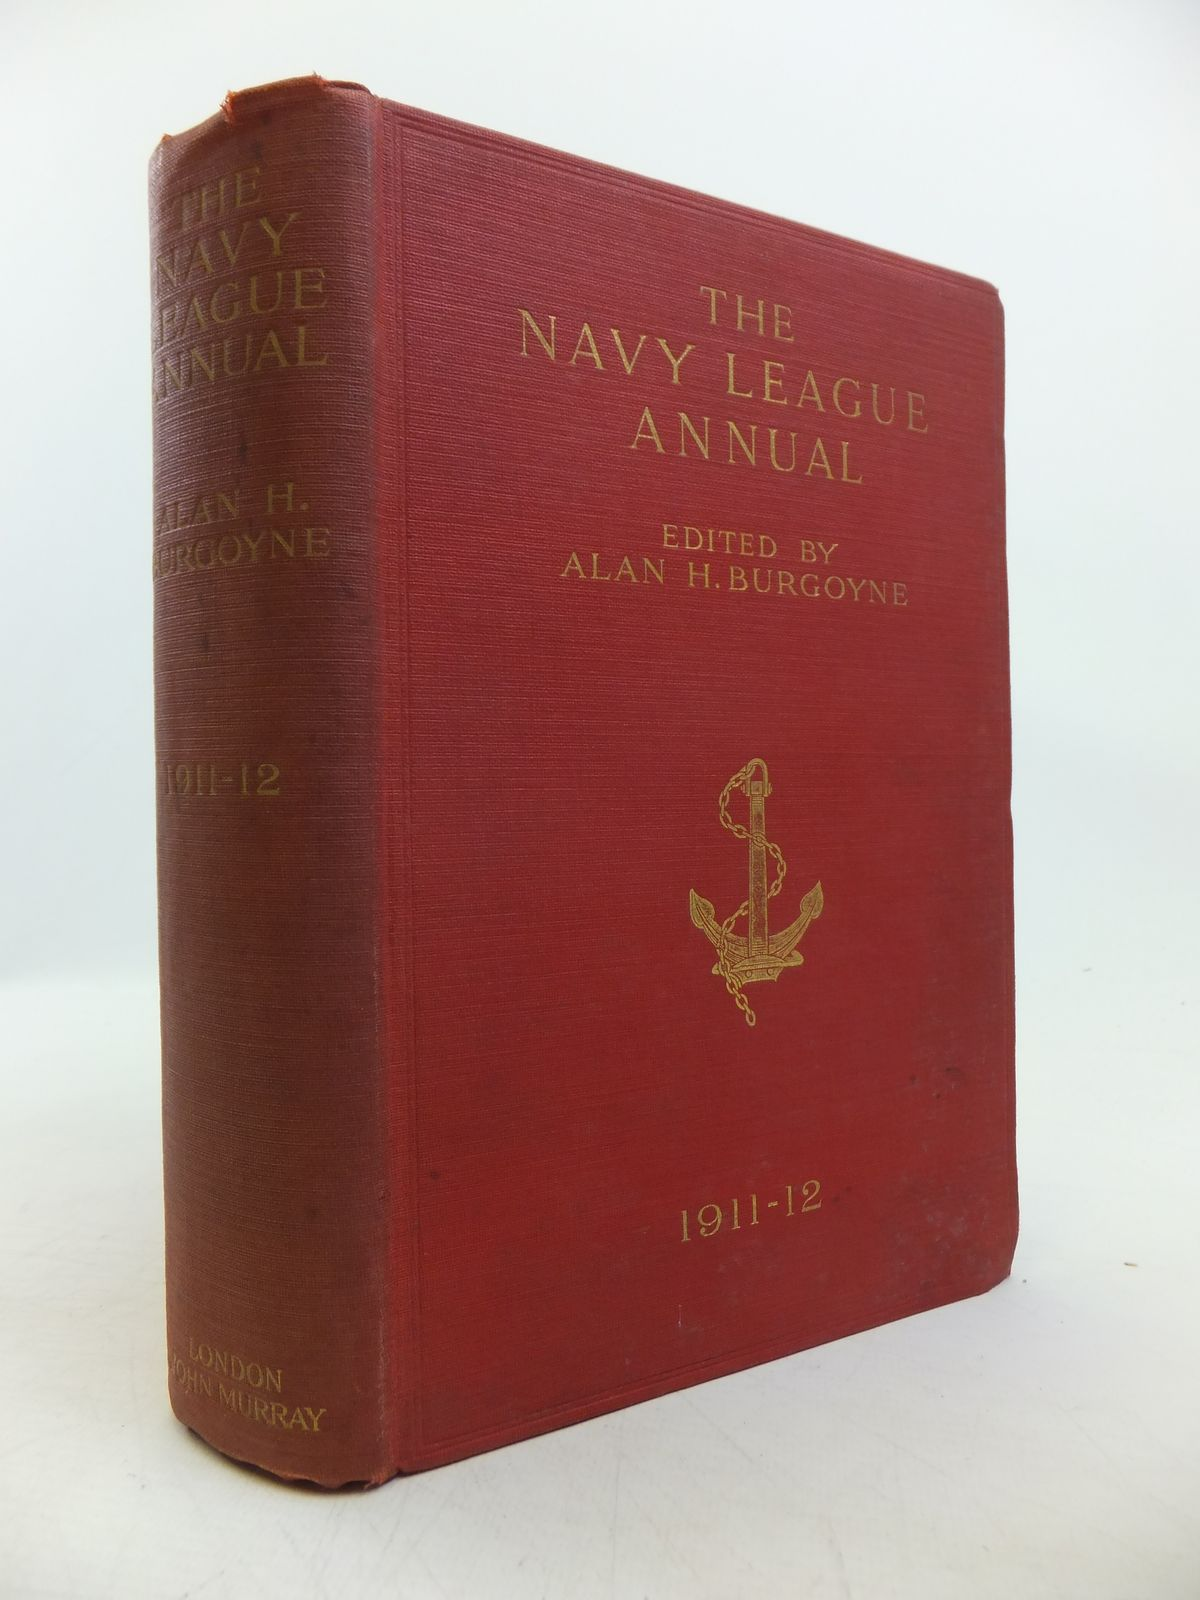 Photo of THE NAVY LEAGUE ANNUAL 1911-1912 written by Burgoyne, Alan H. H. published by John Murray (STOCK CODE: 1811730)  for sale by Stella & Rose's Books